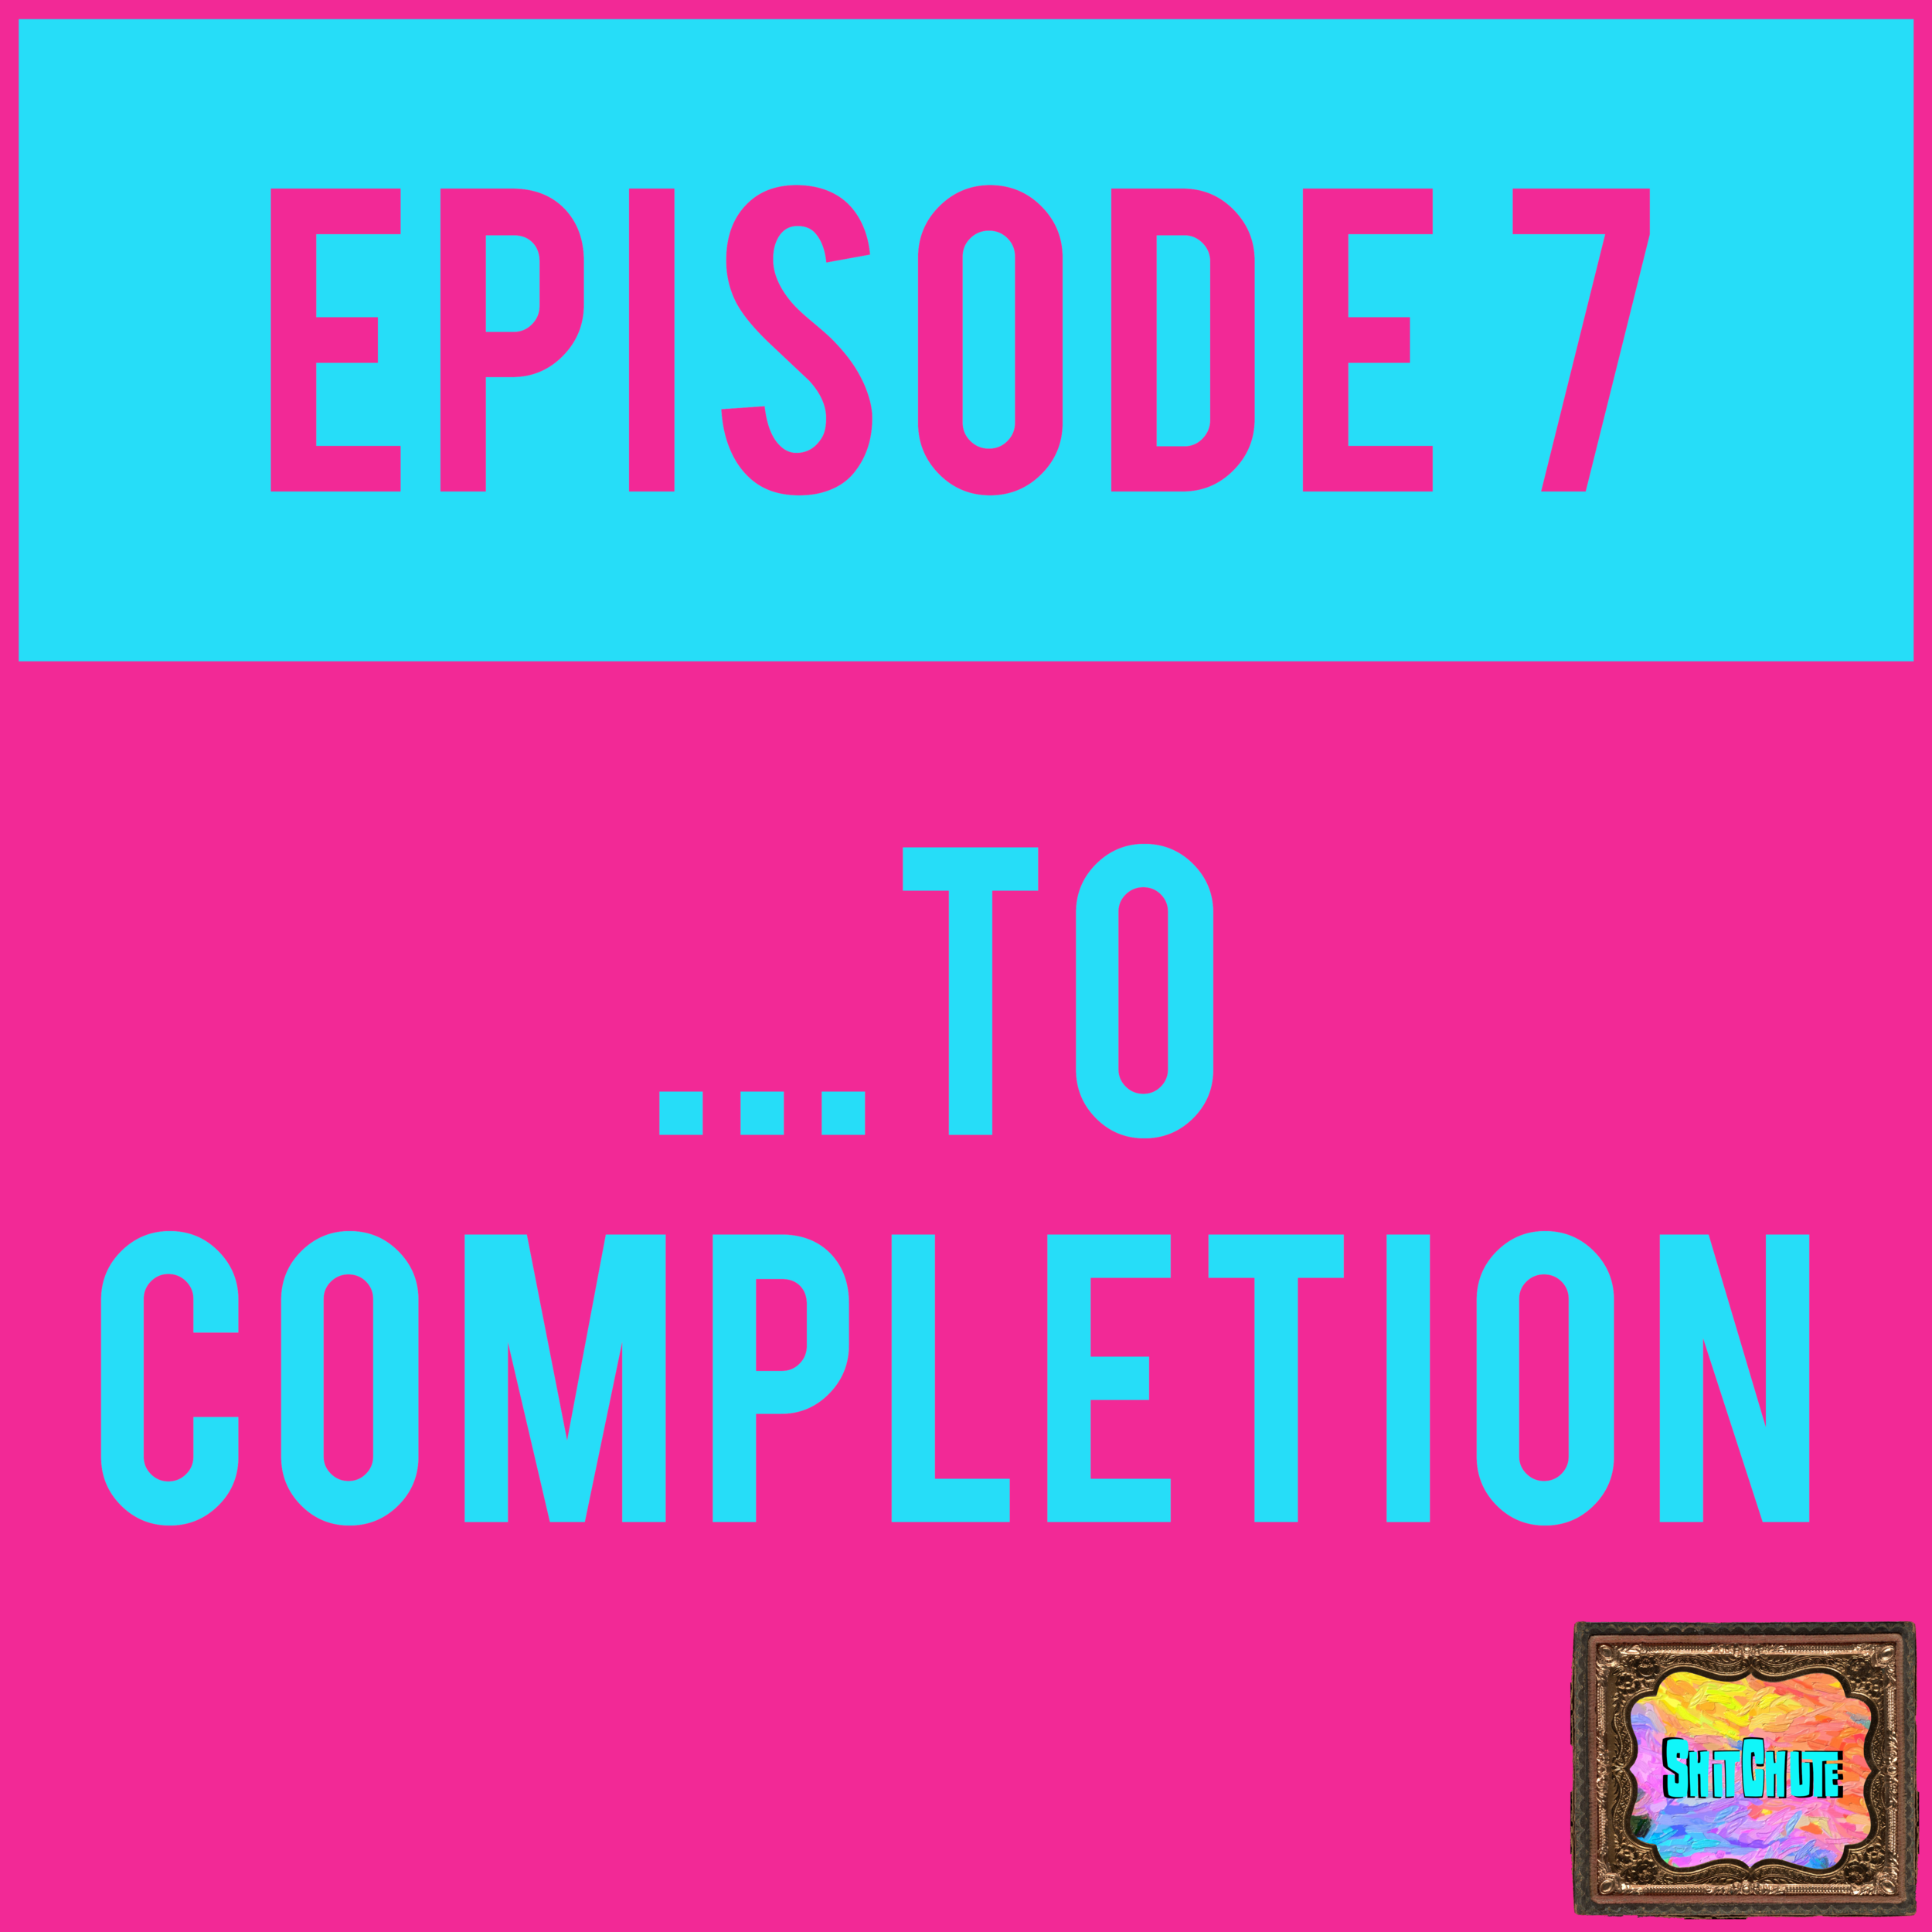 EPISODE 7 - Ooooooh boy this one is nasty as hell. Also Alex throws up again HAHAHAHAHAHA. ...TO COMPLETION - EPISODE 7 with Milkman Danny of the world-famous #ShitChute is up for all you big ballin' $5 patrons subbed to our Patreon!